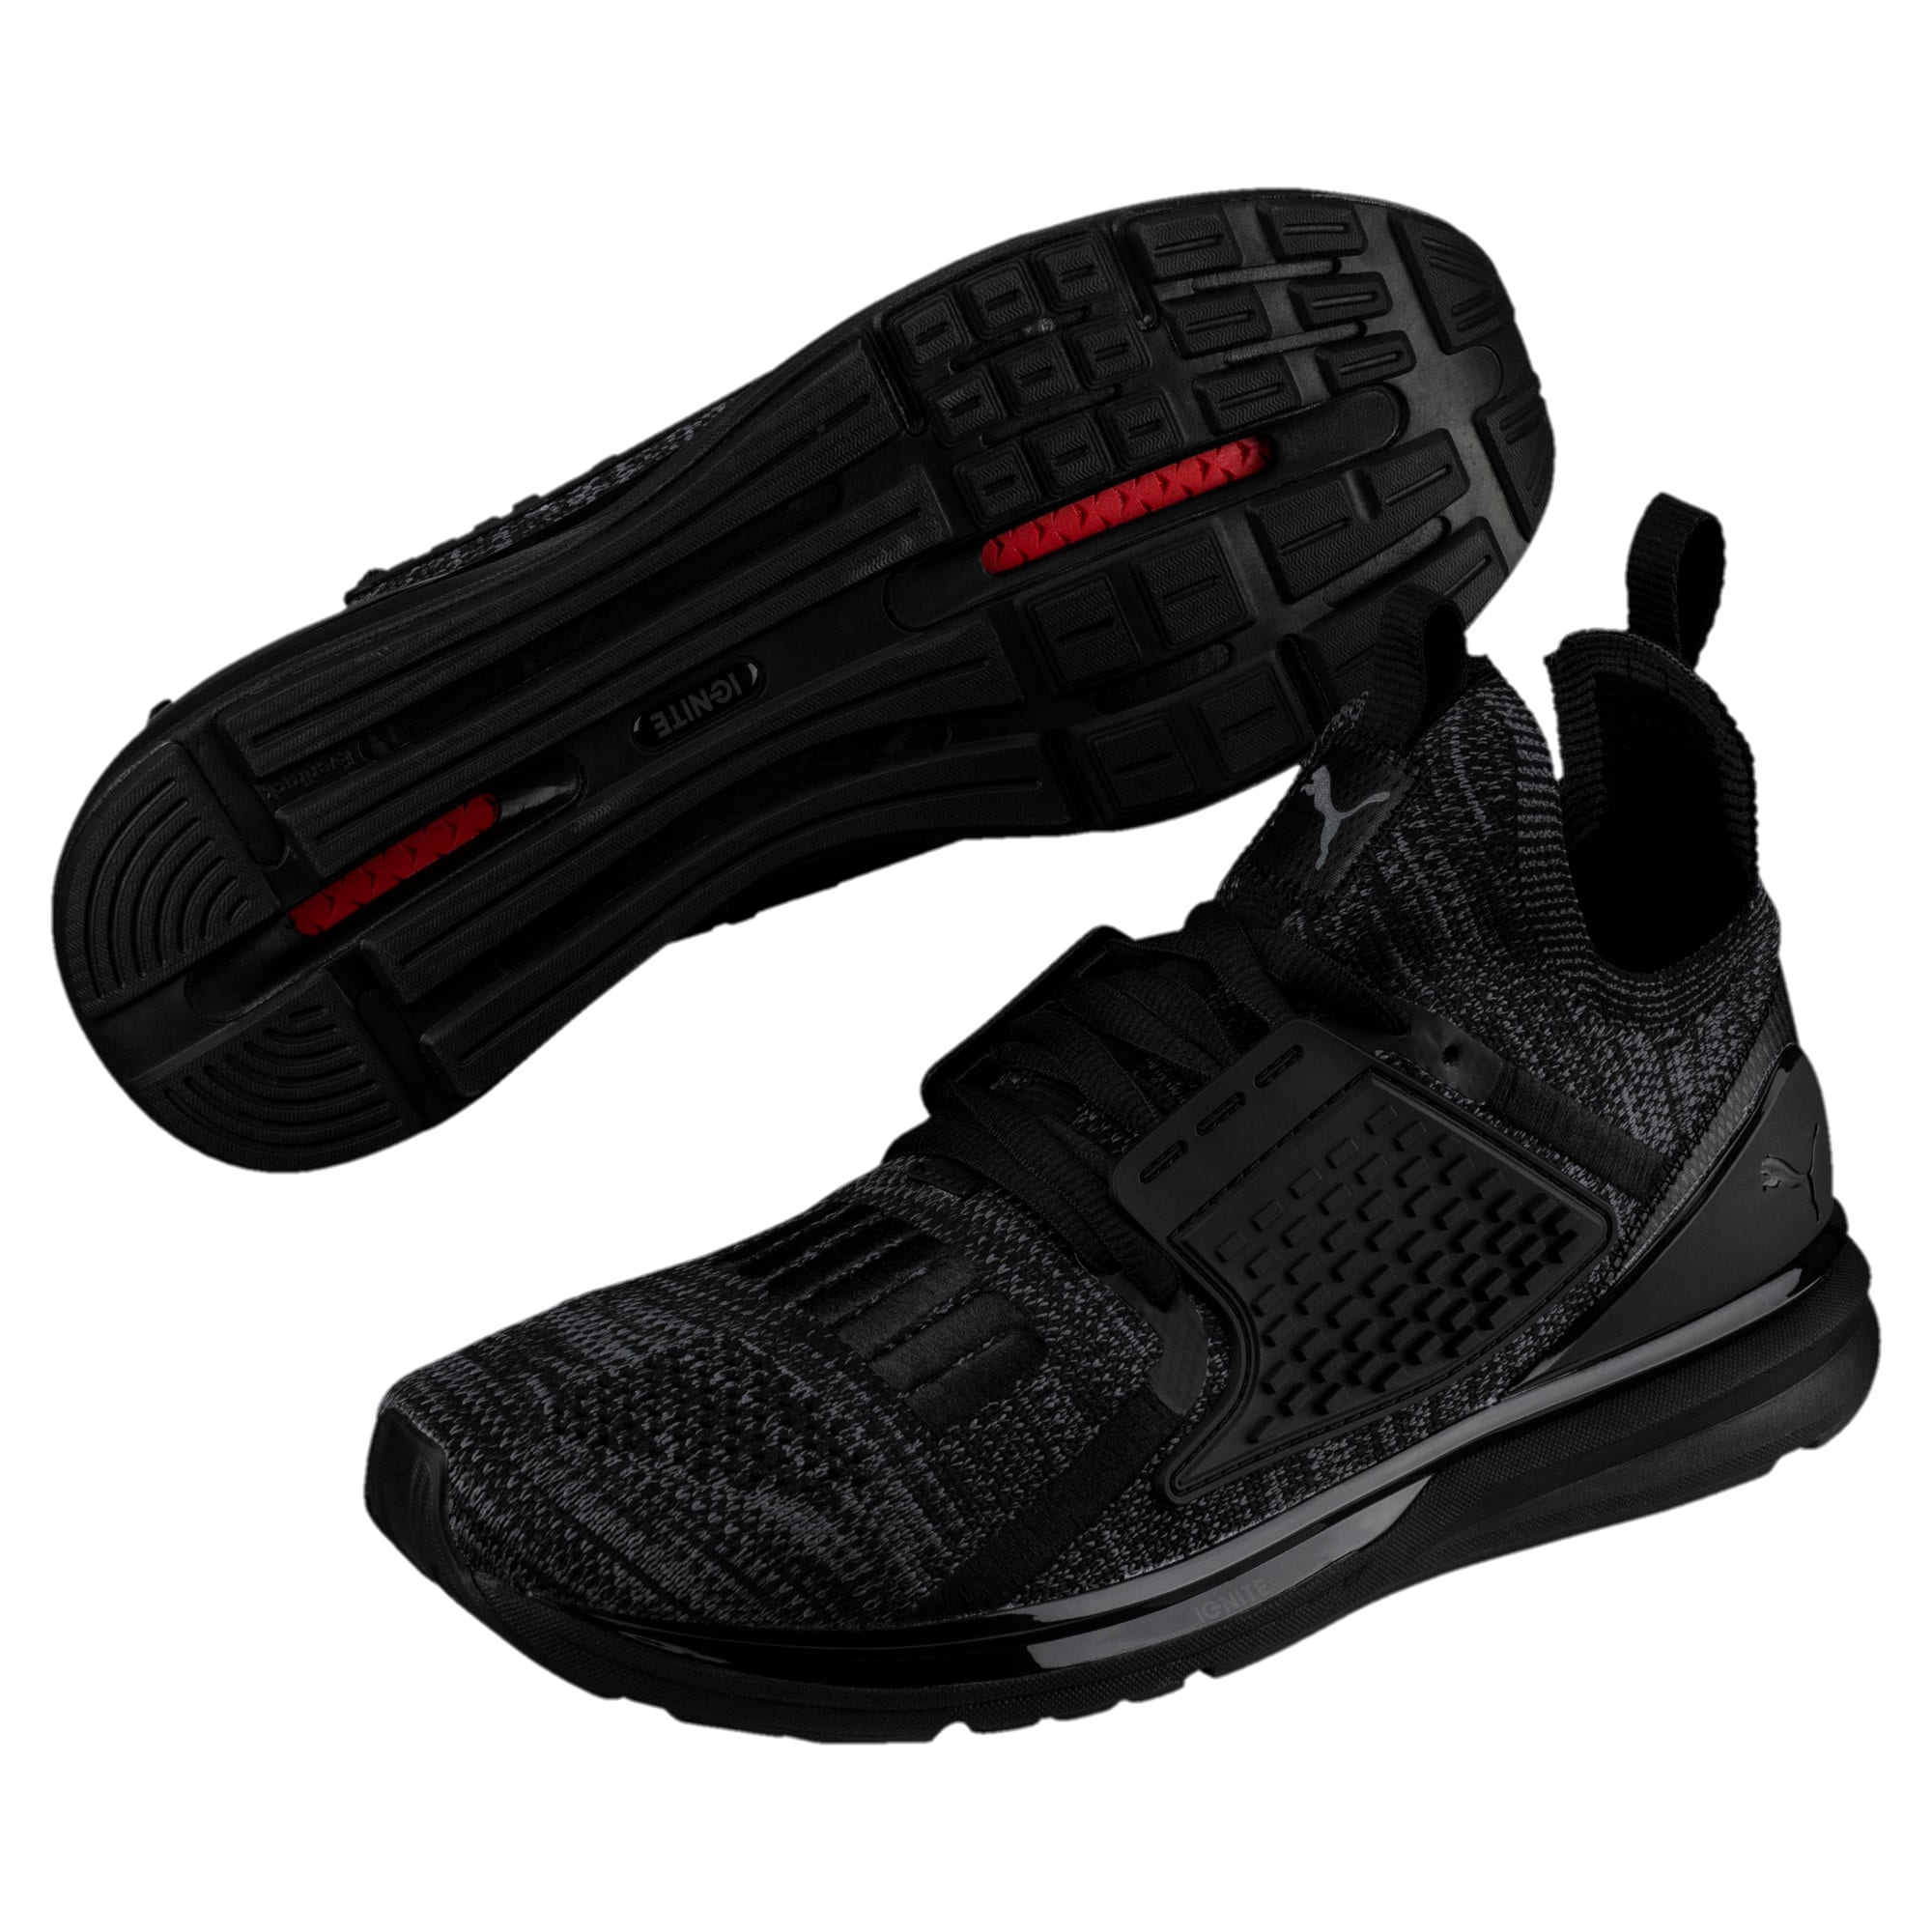 new product aa3c1 93bbe IGNITE Limitless 2 evoKNIT Sneakers